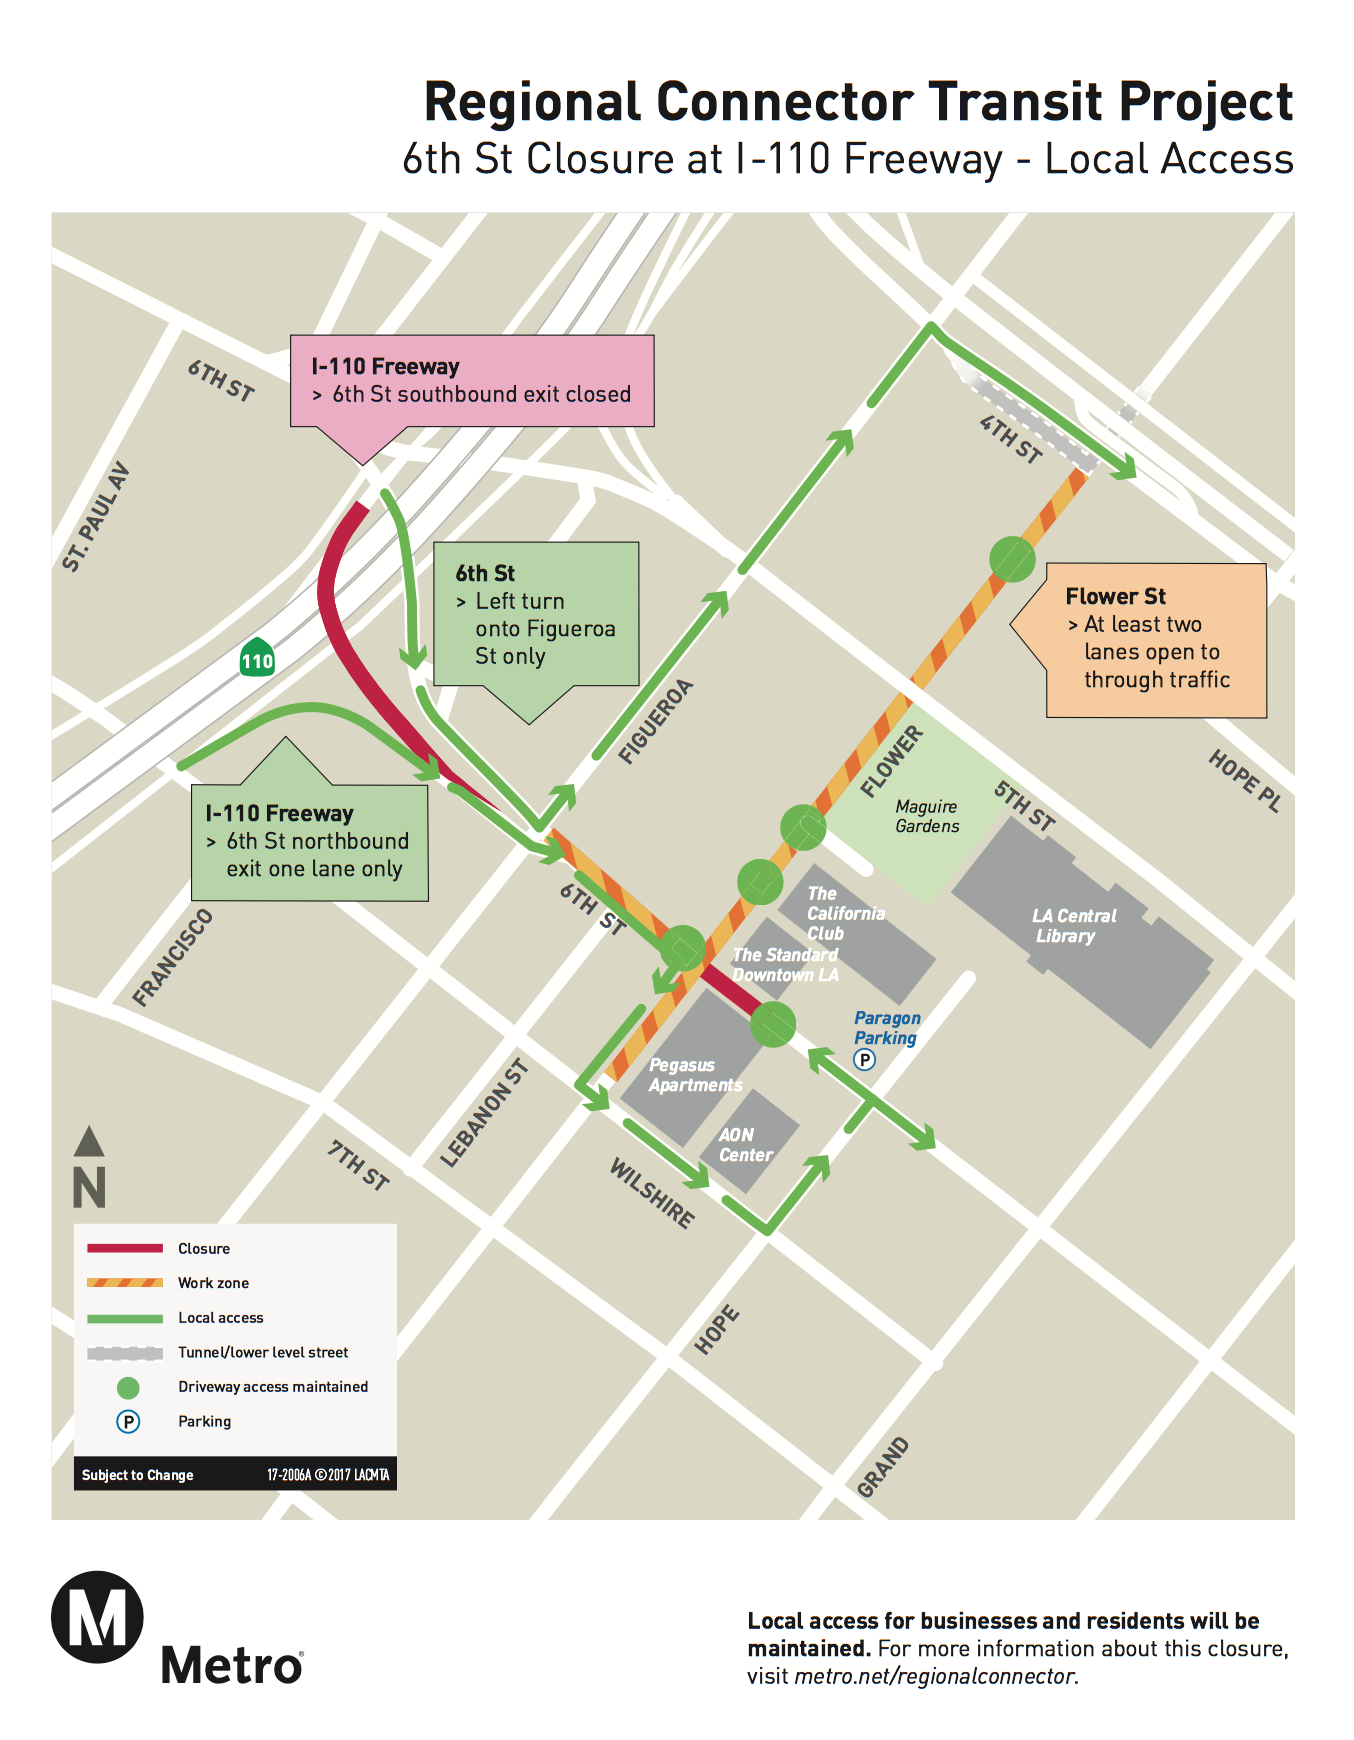 Five month closure of 6th Street between Flower and Hope